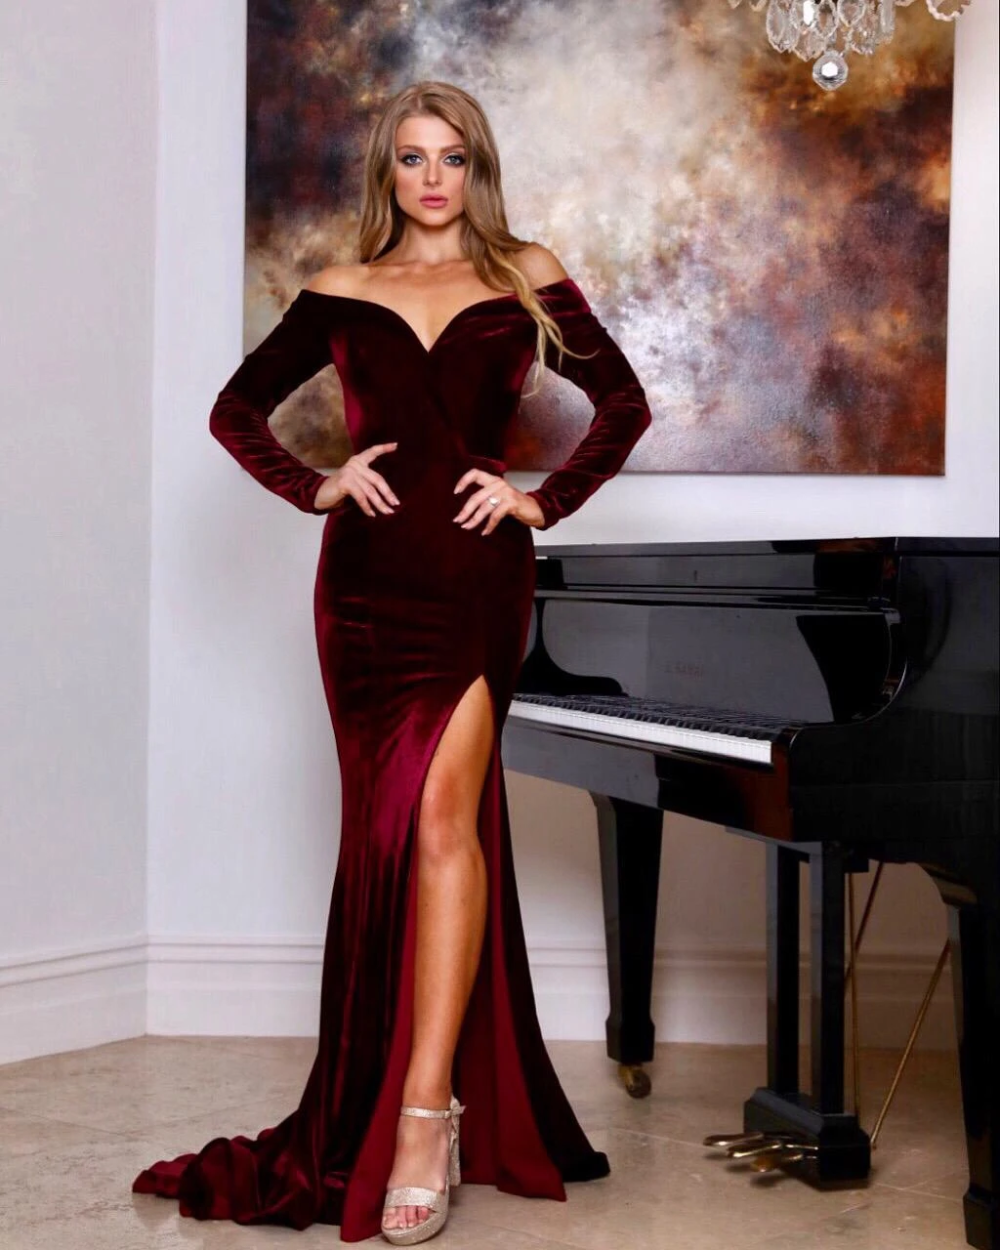 Tinaholy Couture Ta807 Wine Red Velvet Long Sleeve Formal Dress Long Sleeve Dress Formal Velvet Dress Long Velvet Dress Designs [ 1250 x 1000 Pixel ]